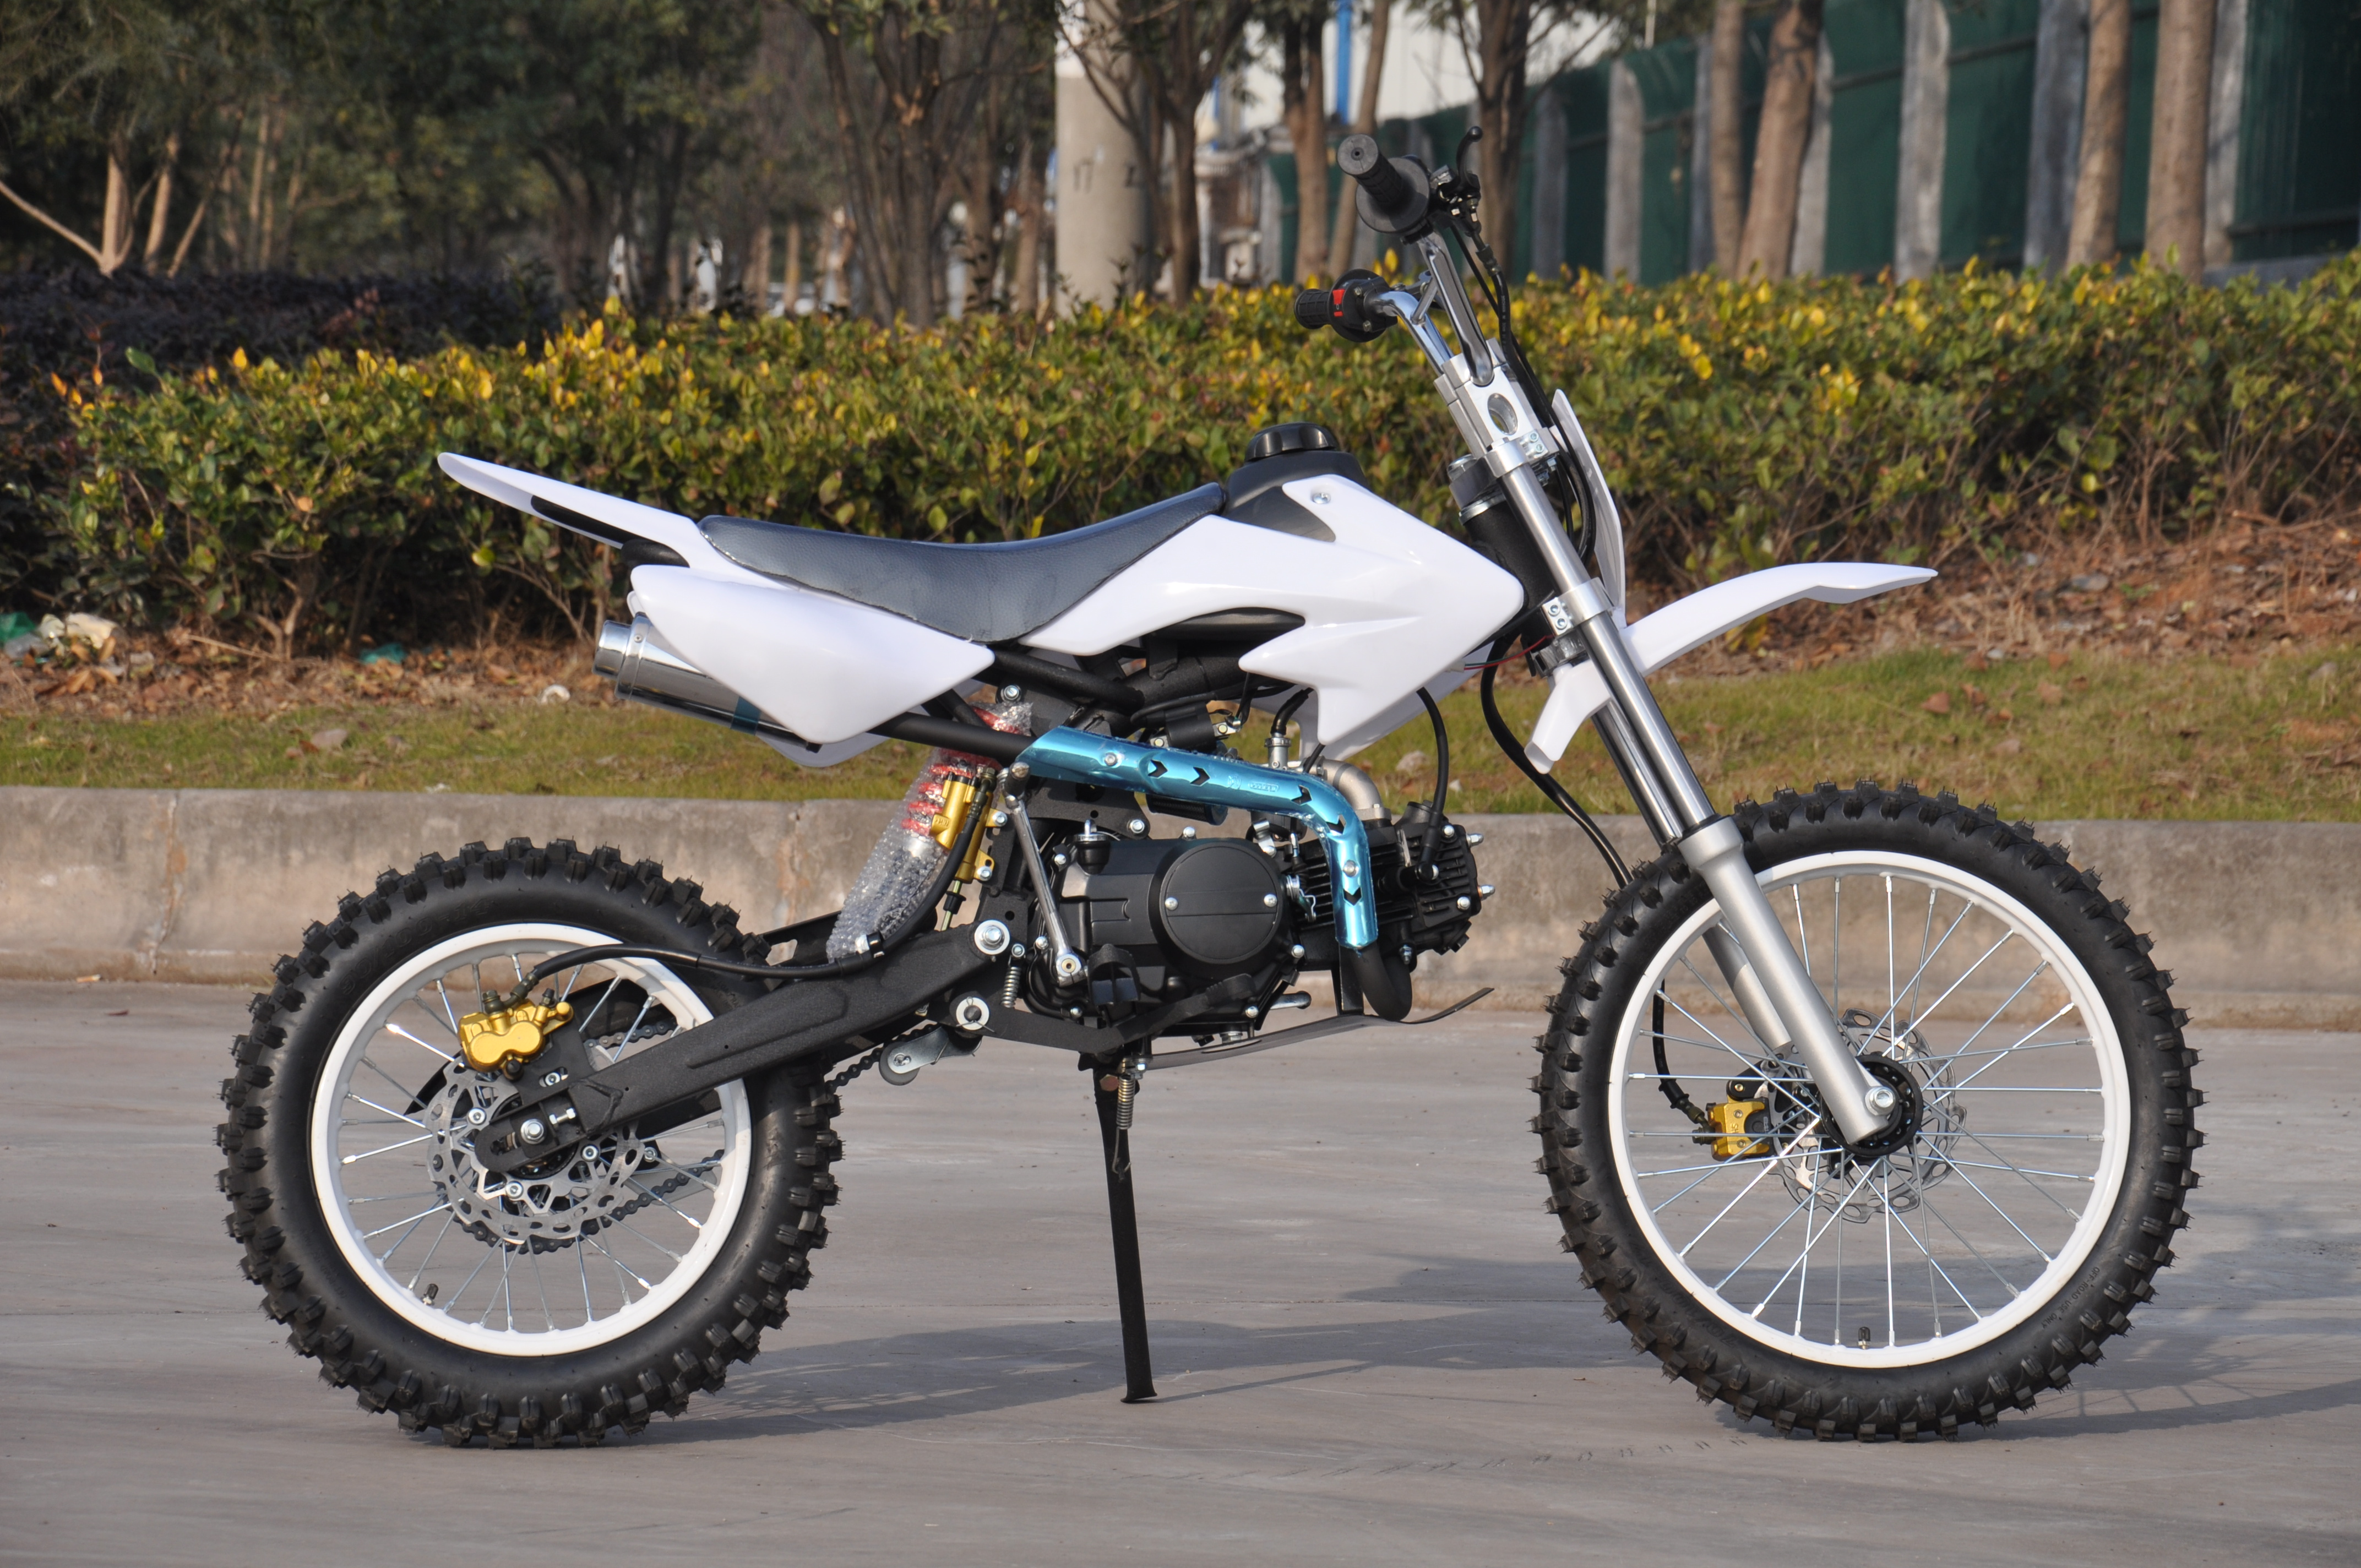 rc boat electric with Pit Bike 125cc Fx 125f Field Style Pit Bike Dirt Bike 2016 Version on Traxxas furthermore Pit Bike 125cc Fx 125f Field Style Pit Bike Dirt Bike 2016 Version further Watch moreover Aquaqub6220 further Contrav4.